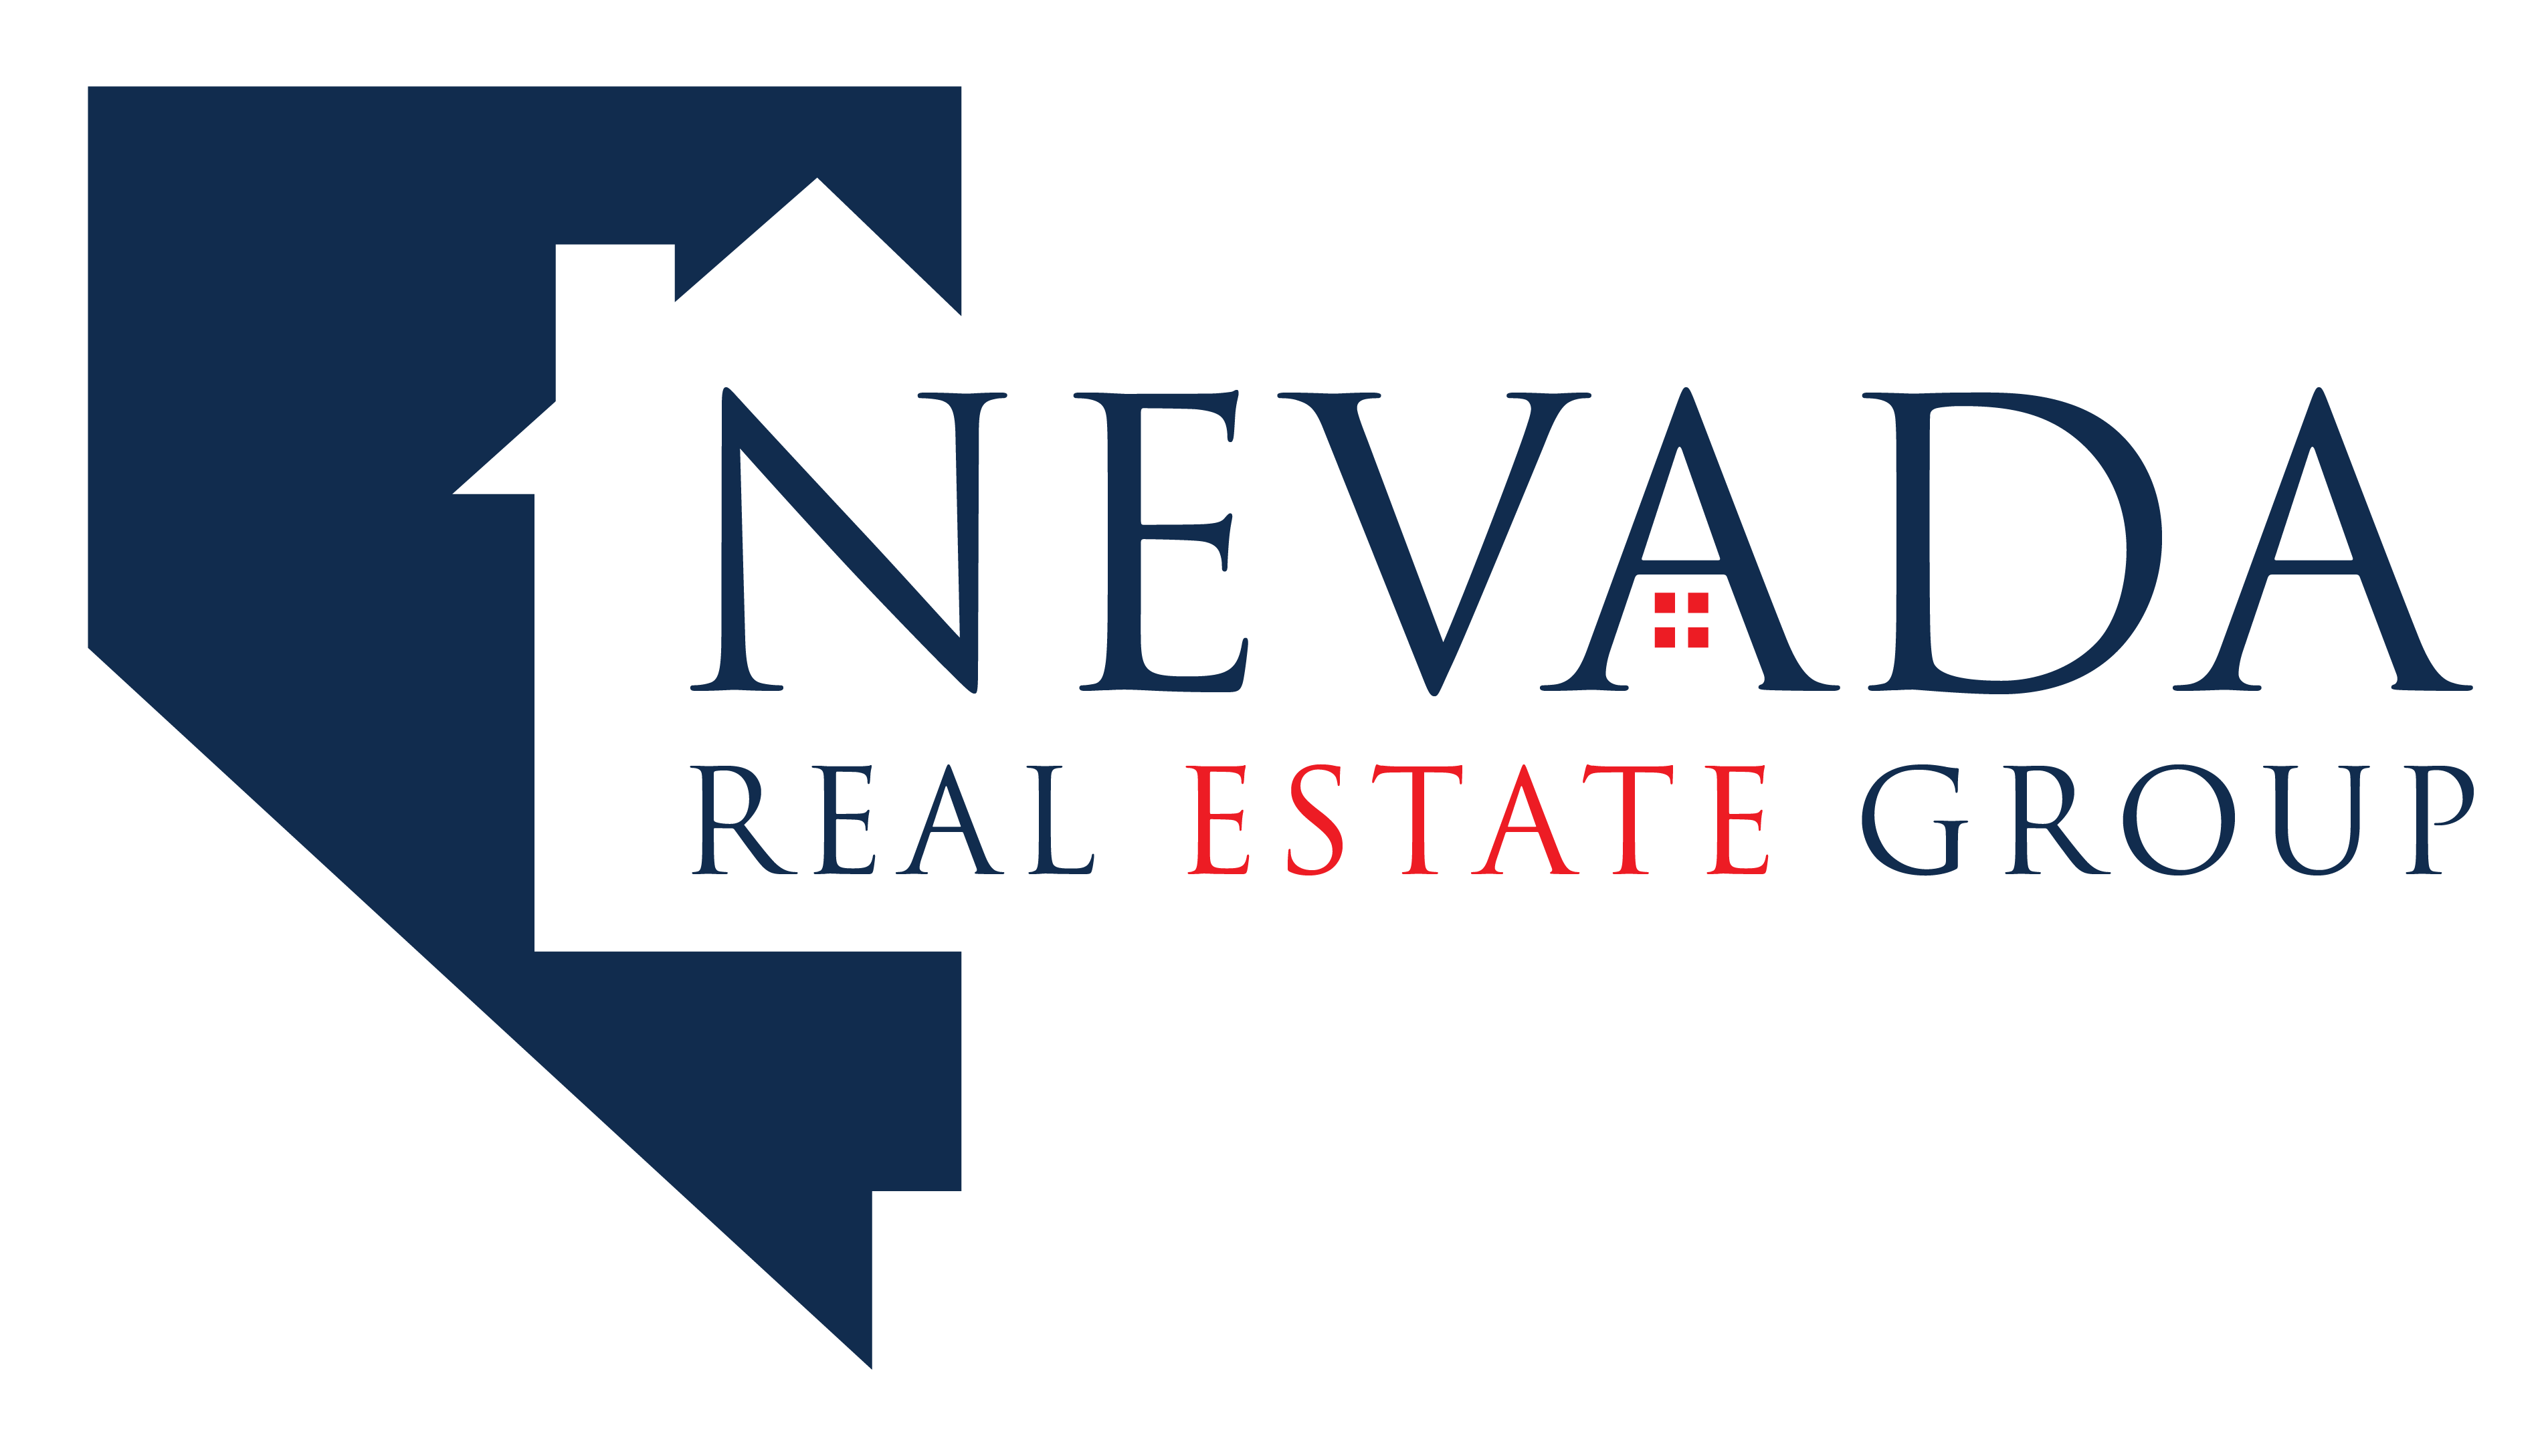 Nevada Real Estate Group logo